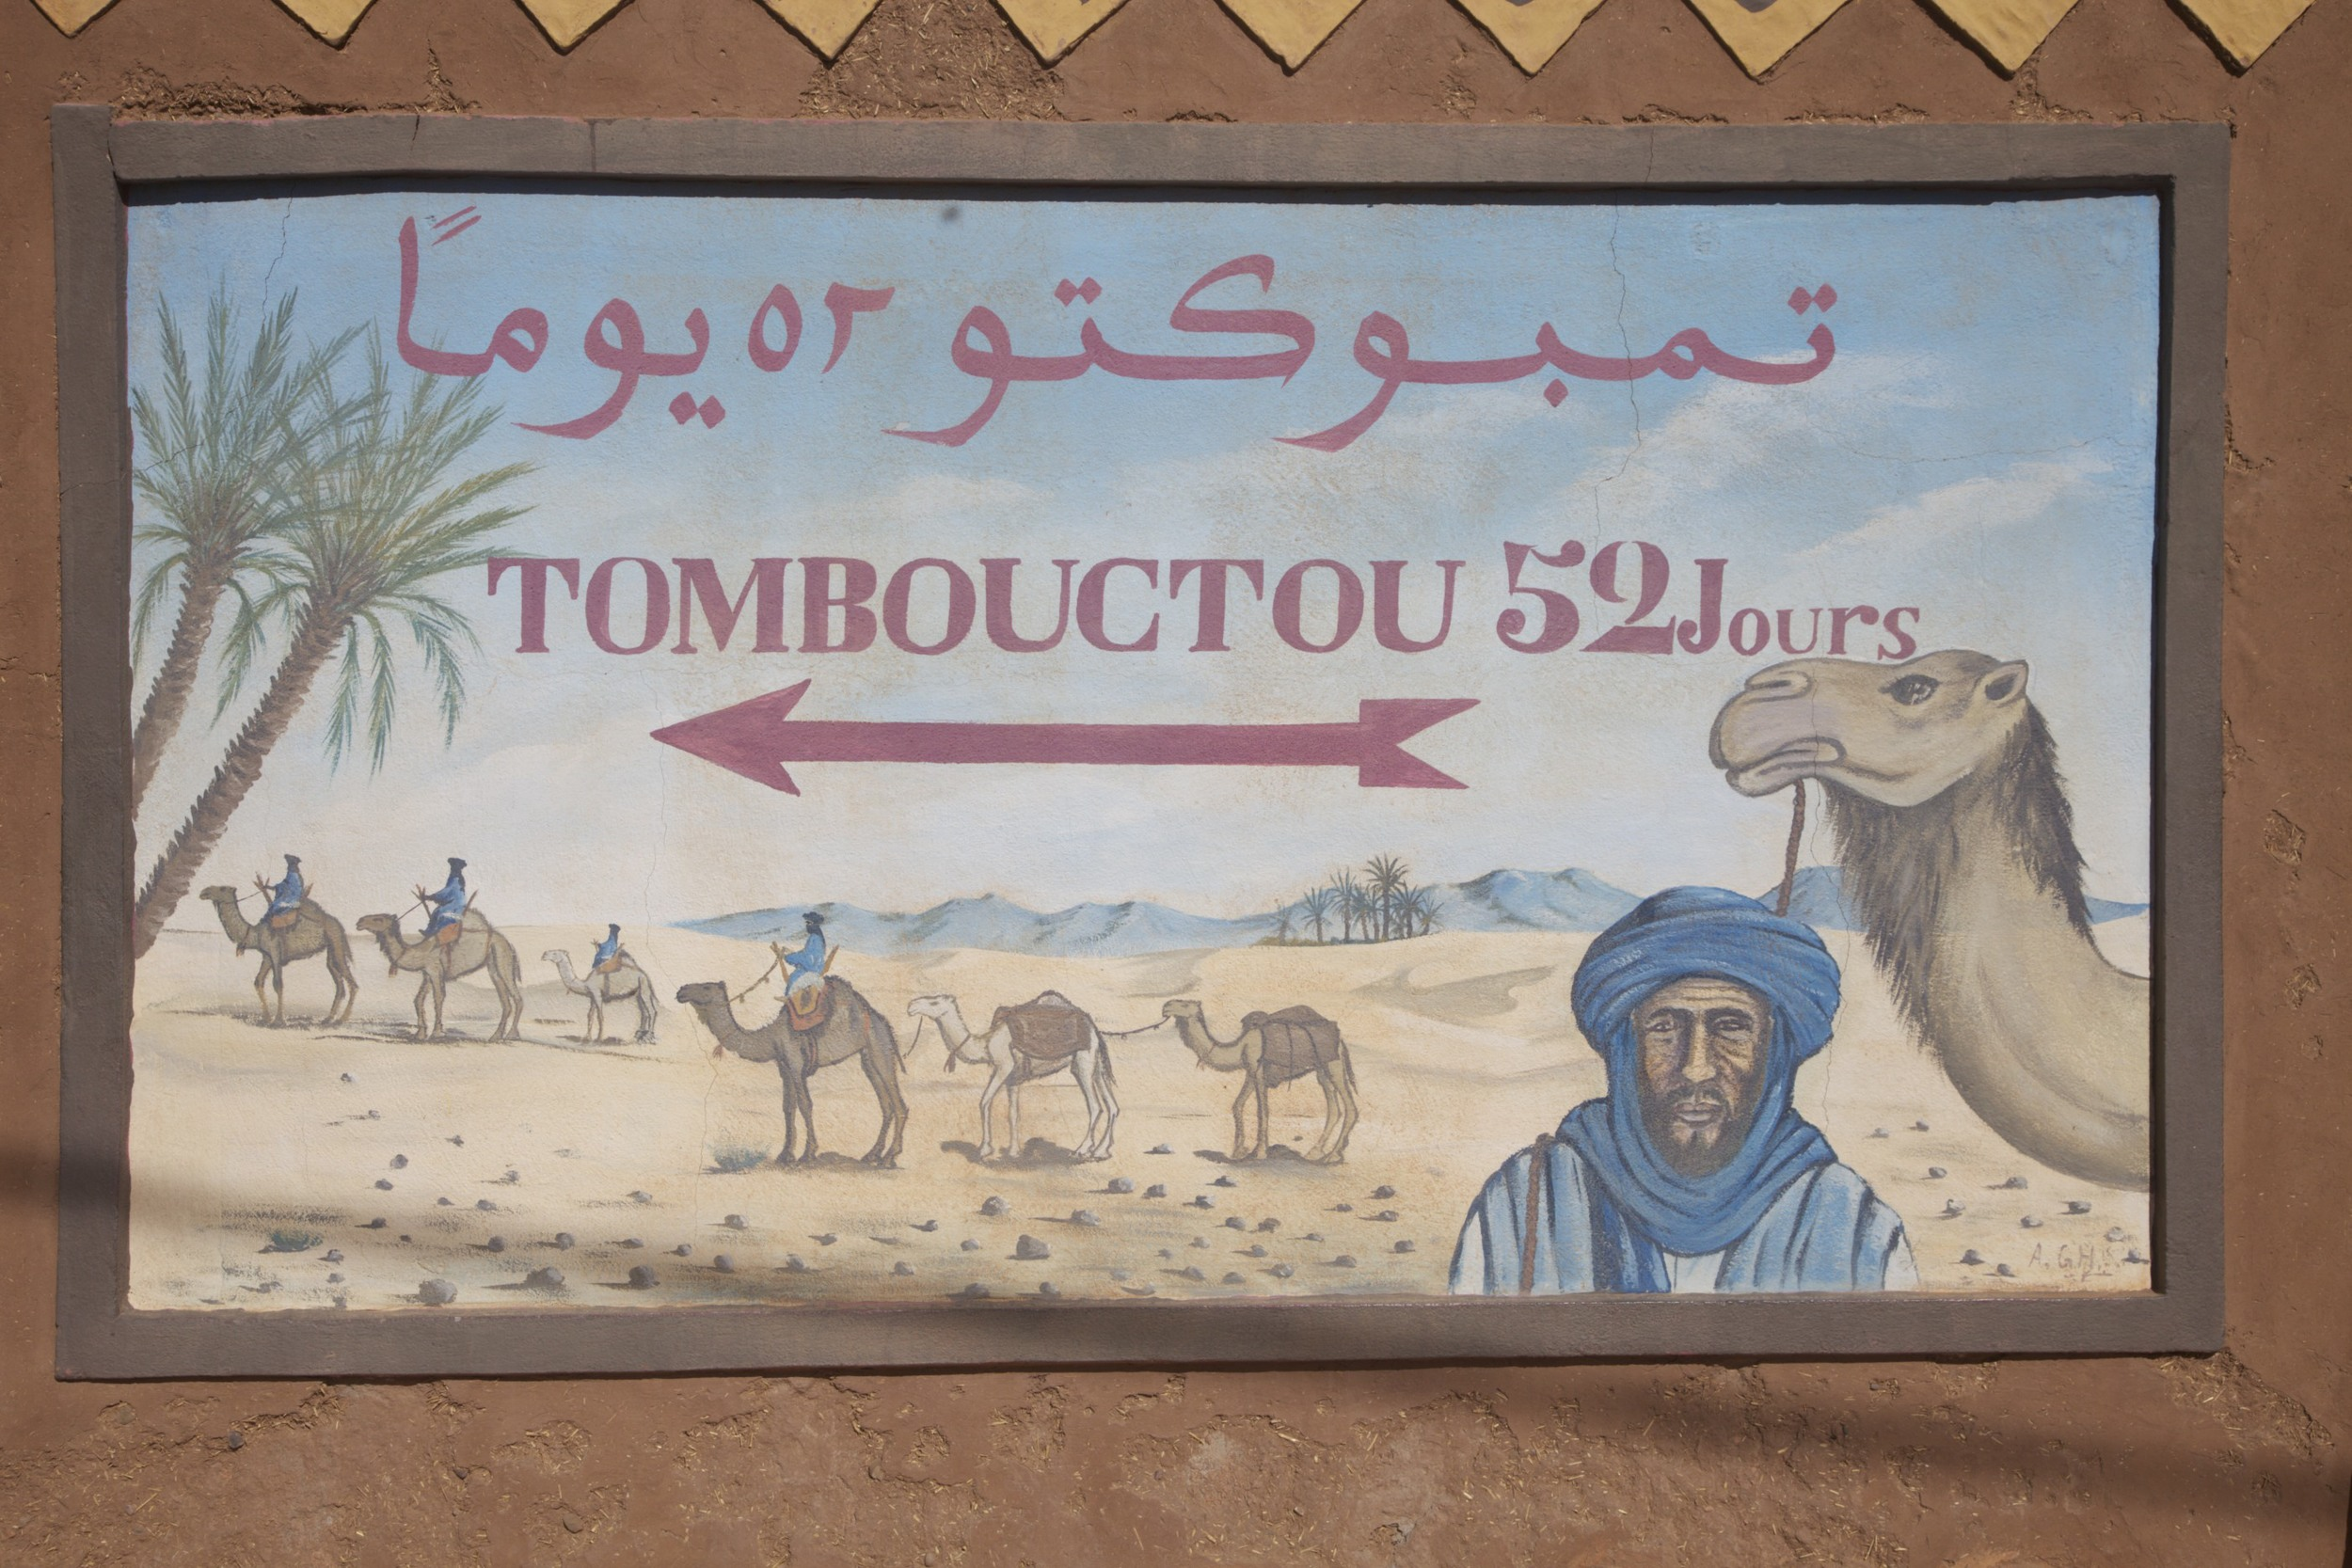 Sign in Zagora, 52 days by camel from Timbuktu.